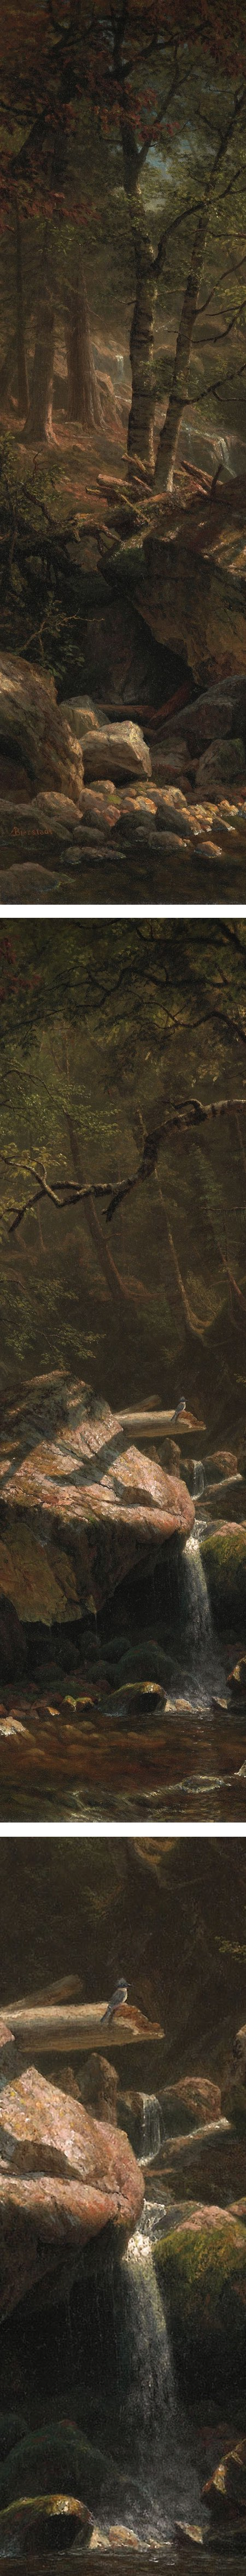 Mountain Brook, Albert Bierstadt (details)